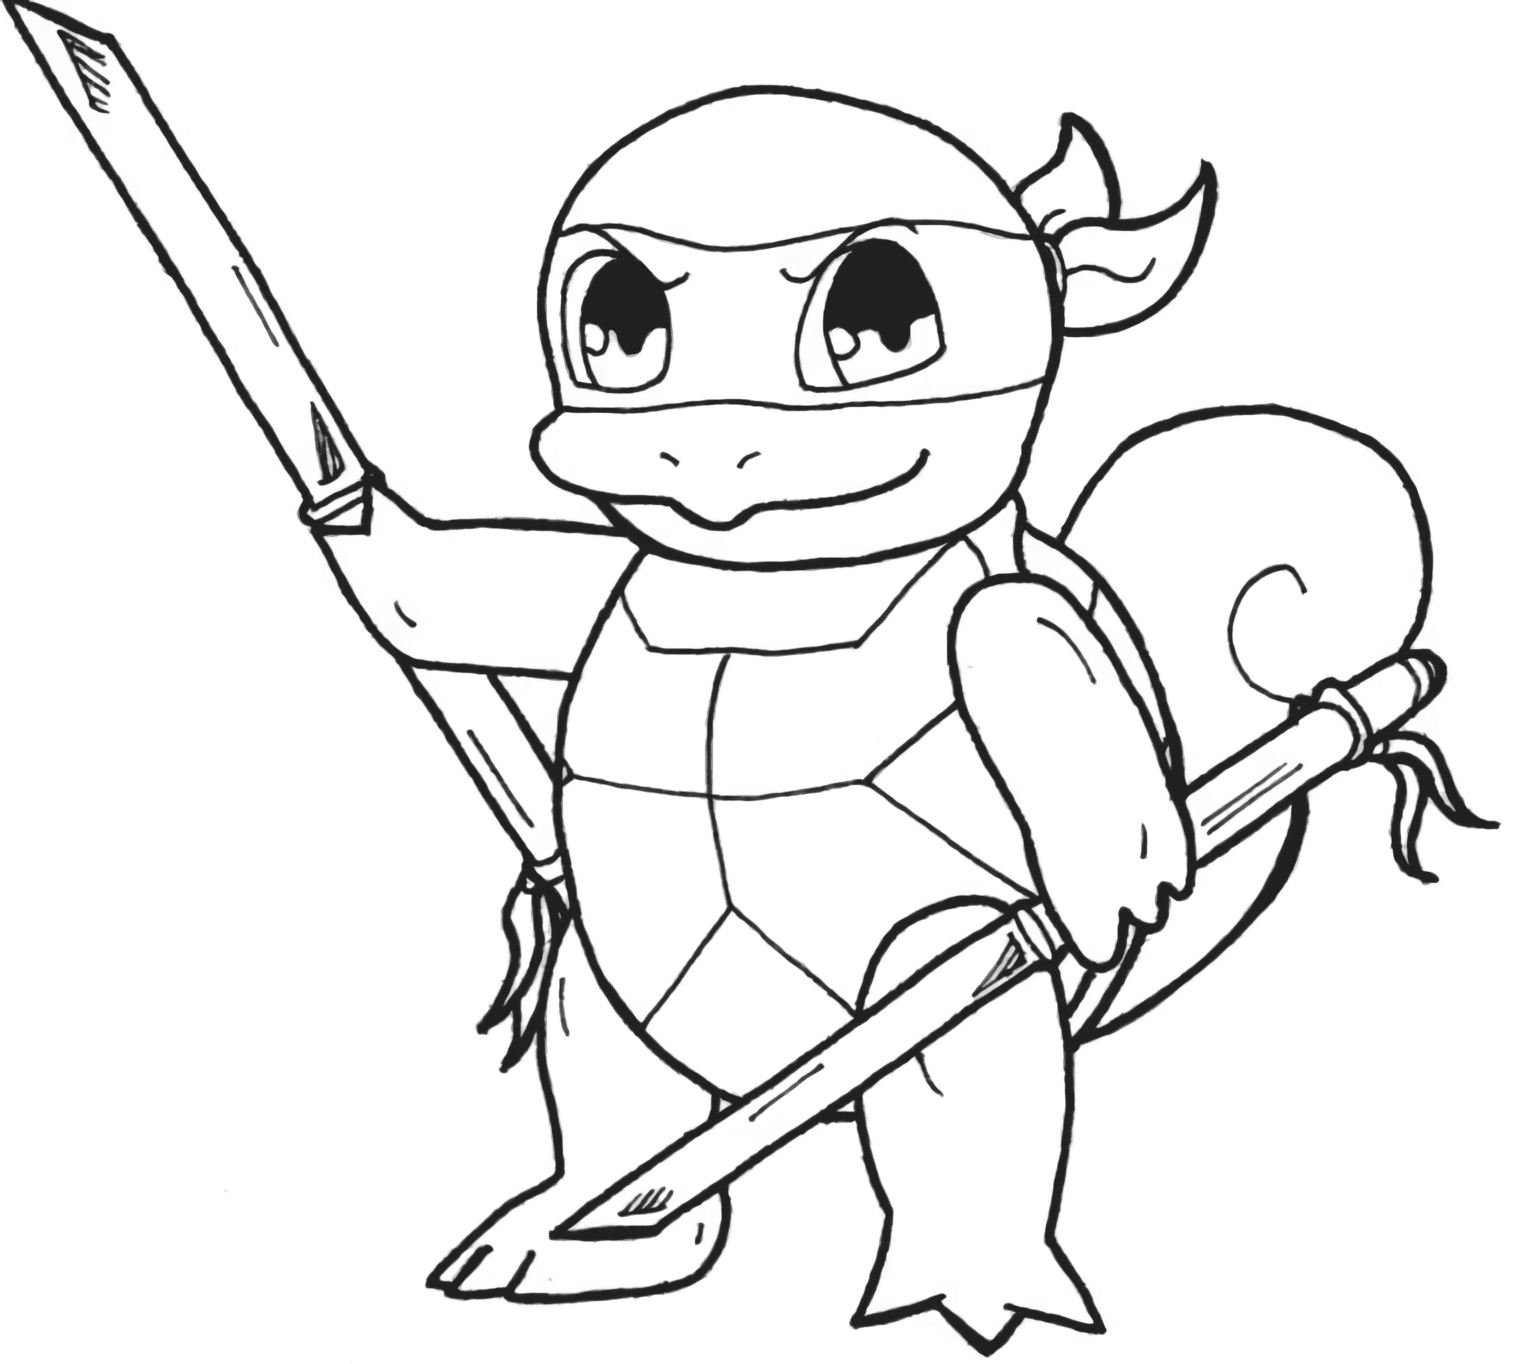 New Squirtle Coloring Pages Download Free Pokemon Coloring Pages